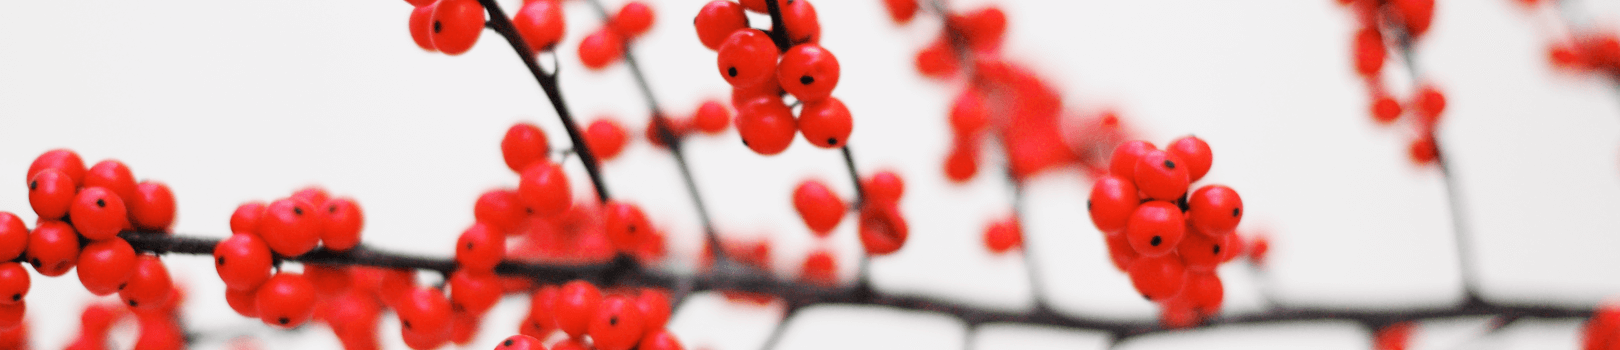 background of red holiday berries